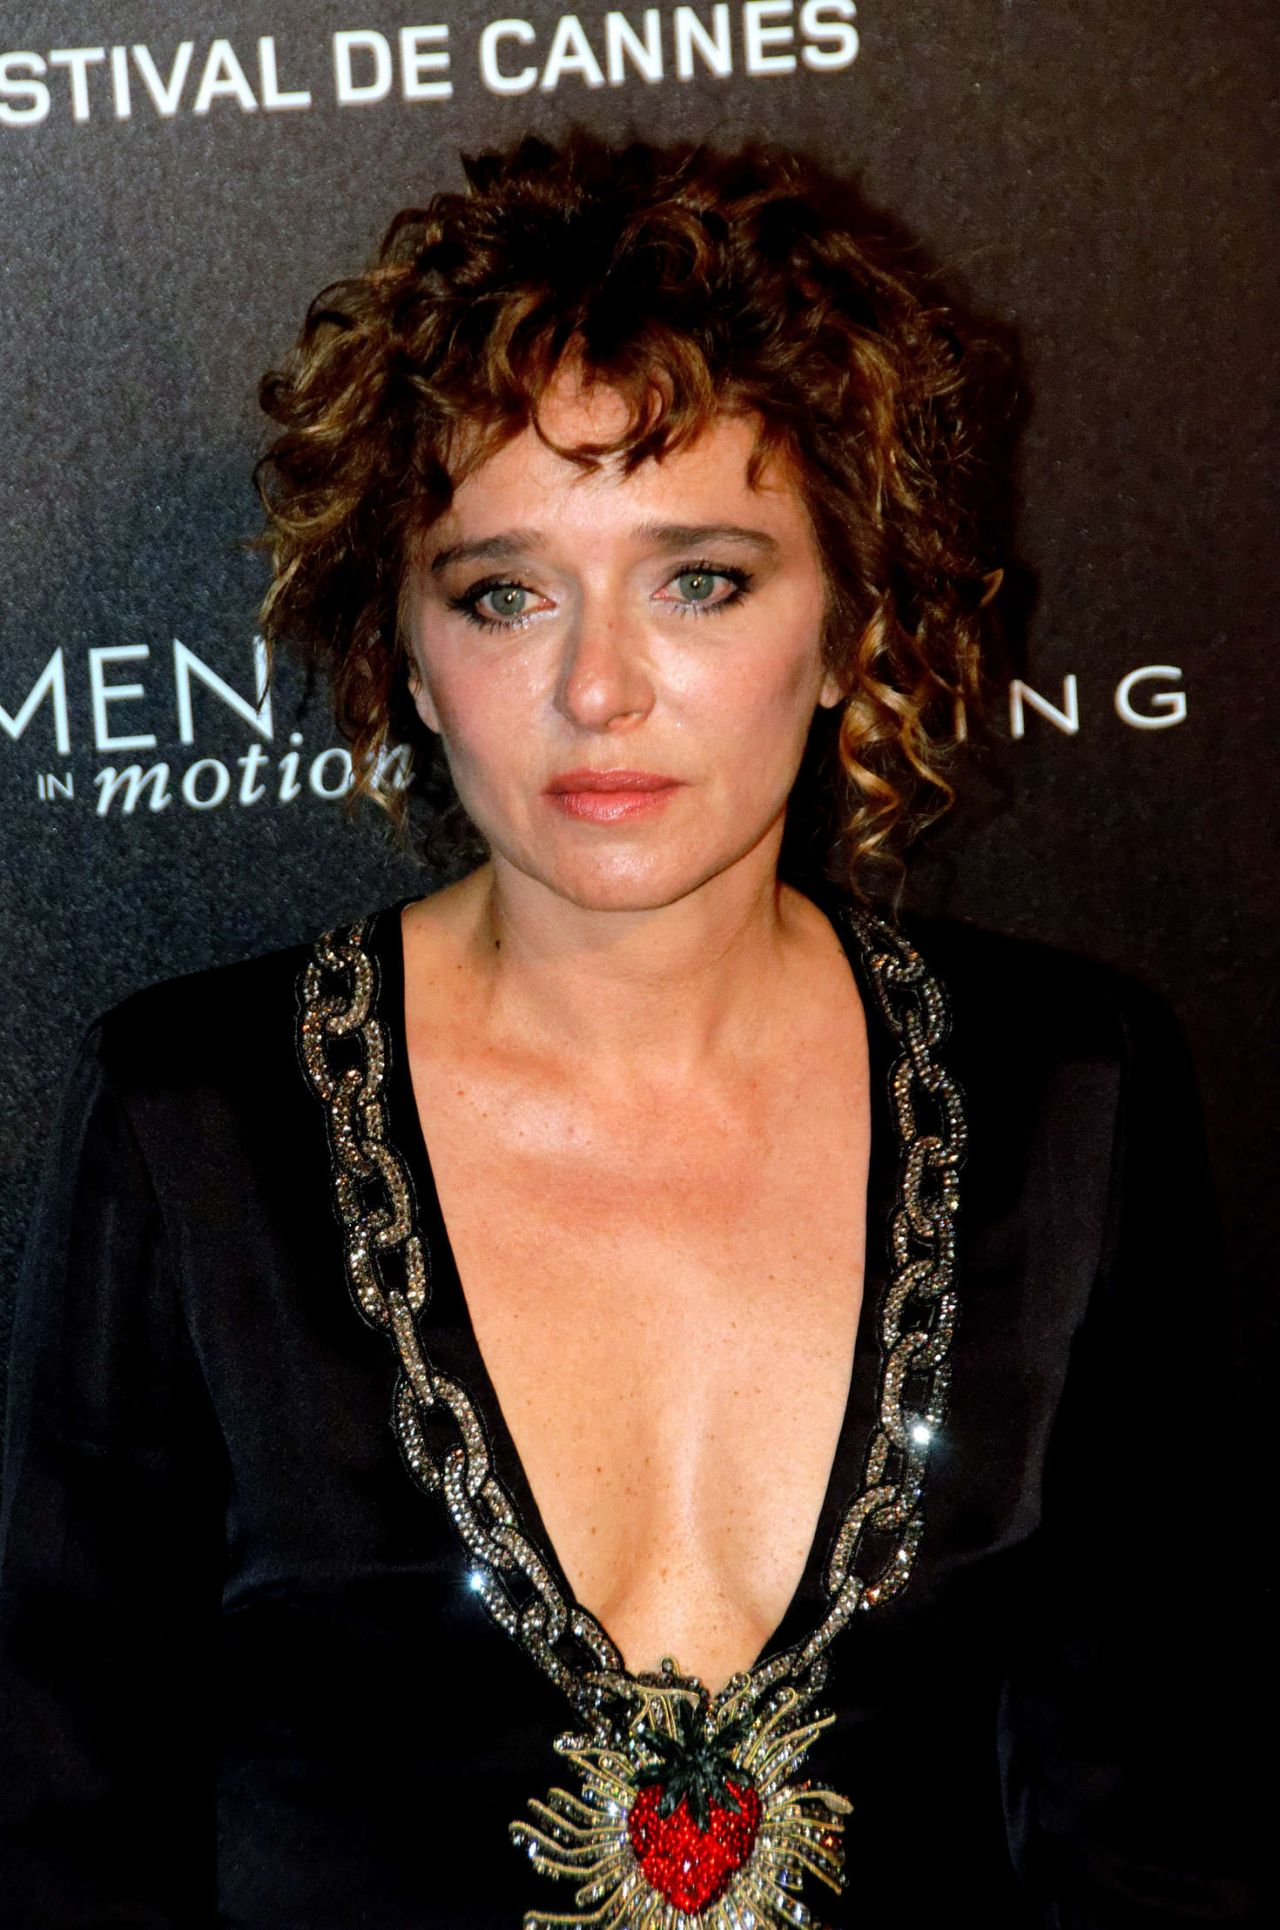 valeria golino - photo #36